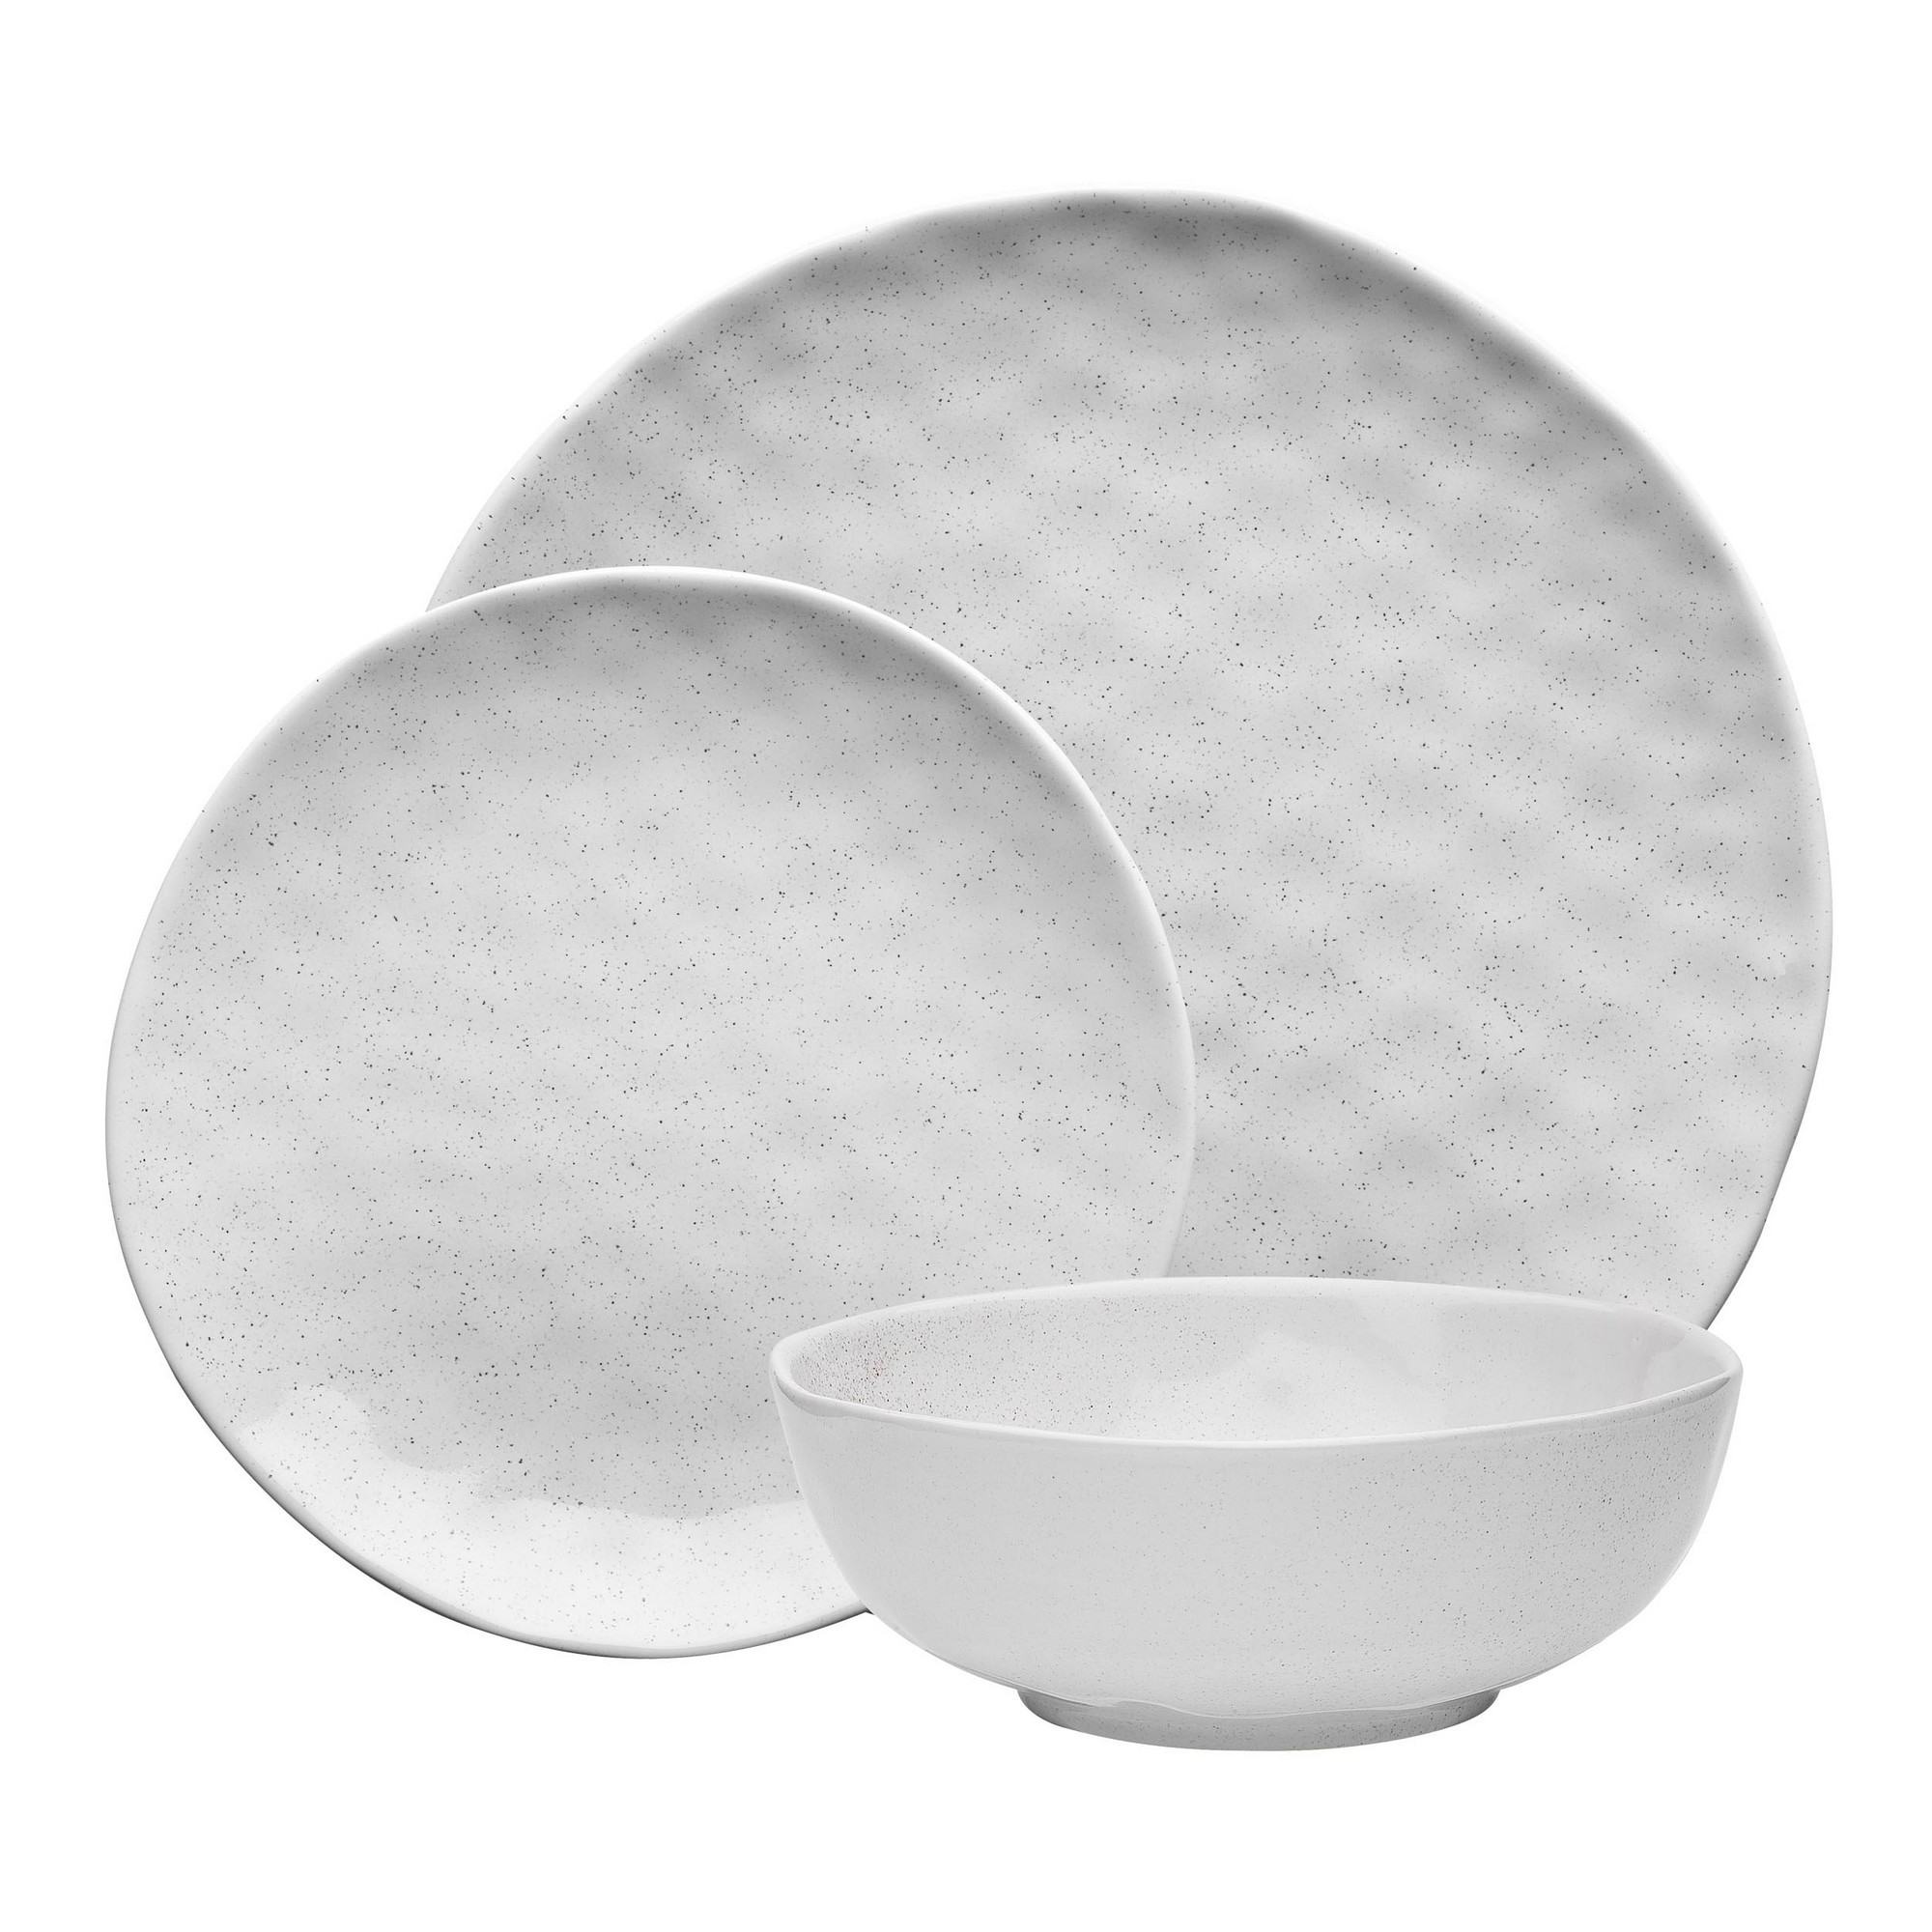 Ecology Speckle 12 Piece Stoneware Dinner Set, Milk